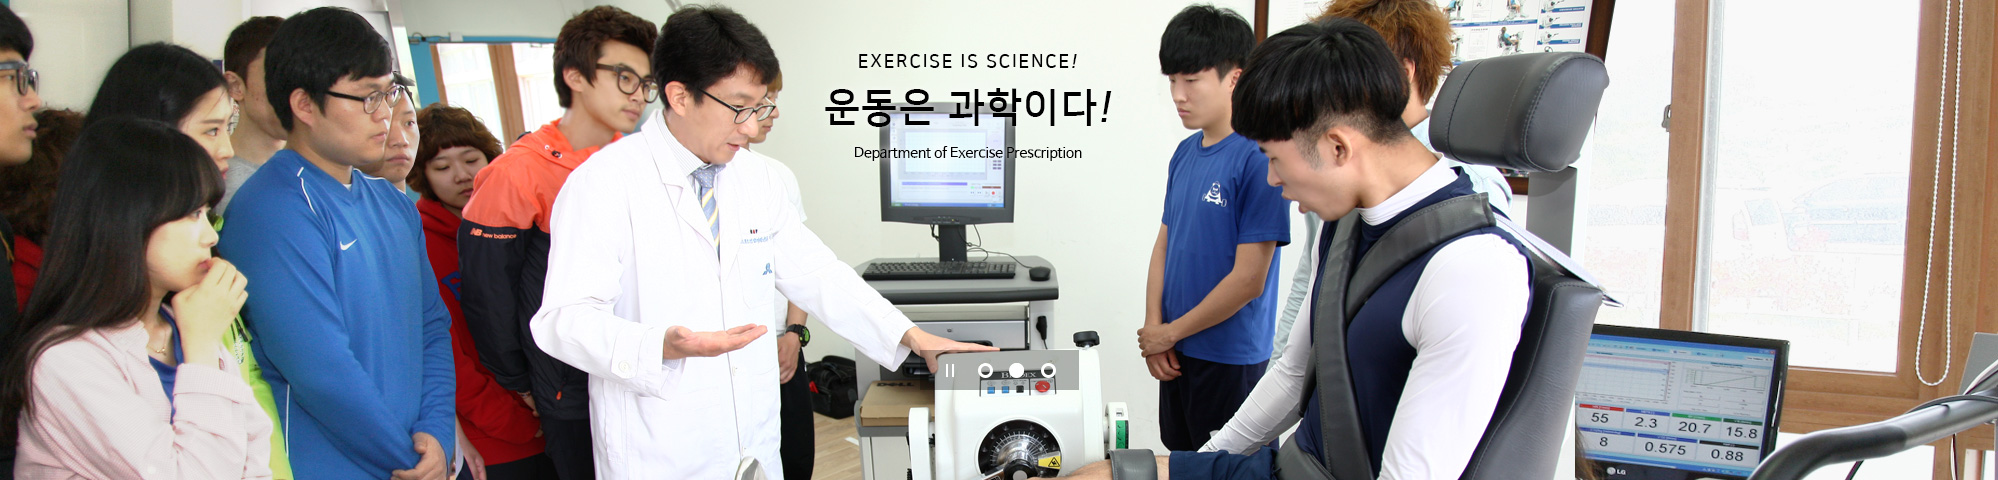 Exercise is Science! 운동은 과학이다! Department of Exercise Prescription